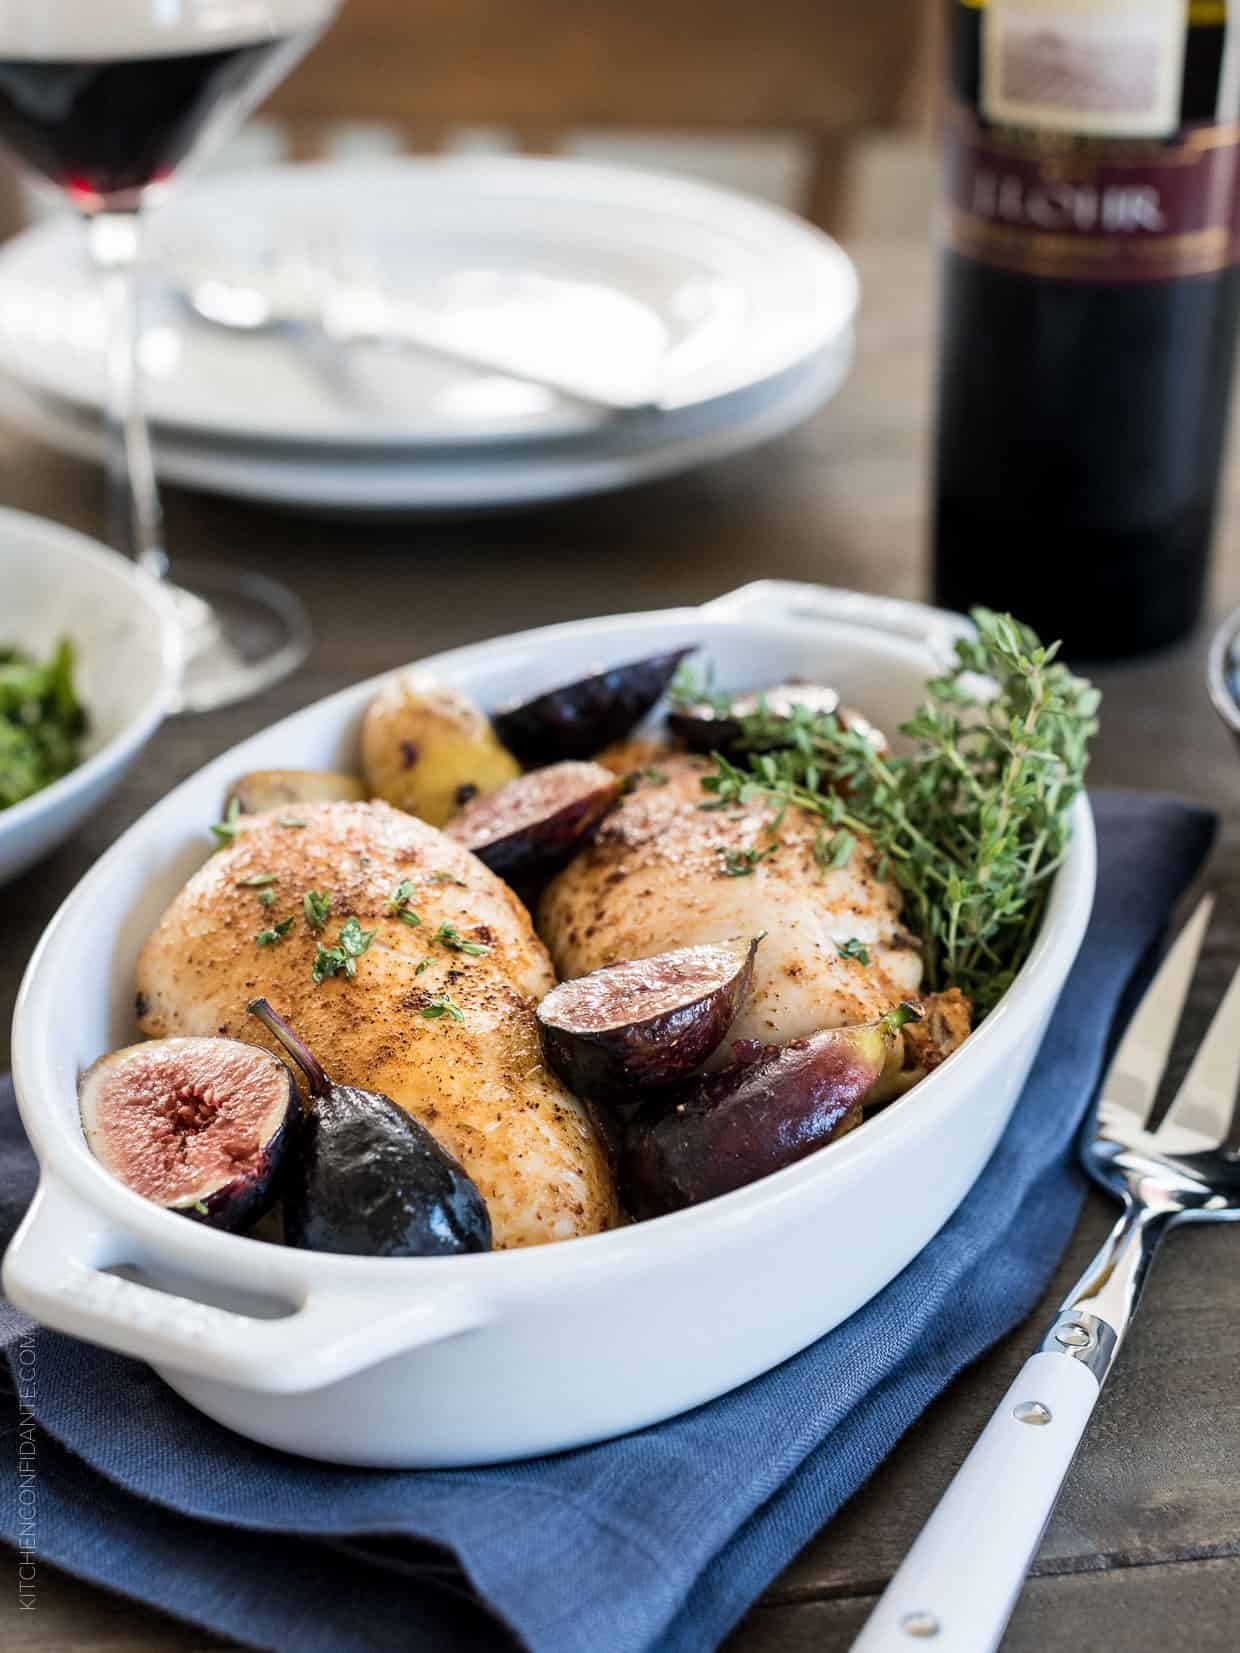 Roast Chicken with Fig Chutney Sauce is all about elevating simple ingredients into something special. Wine helps, too.